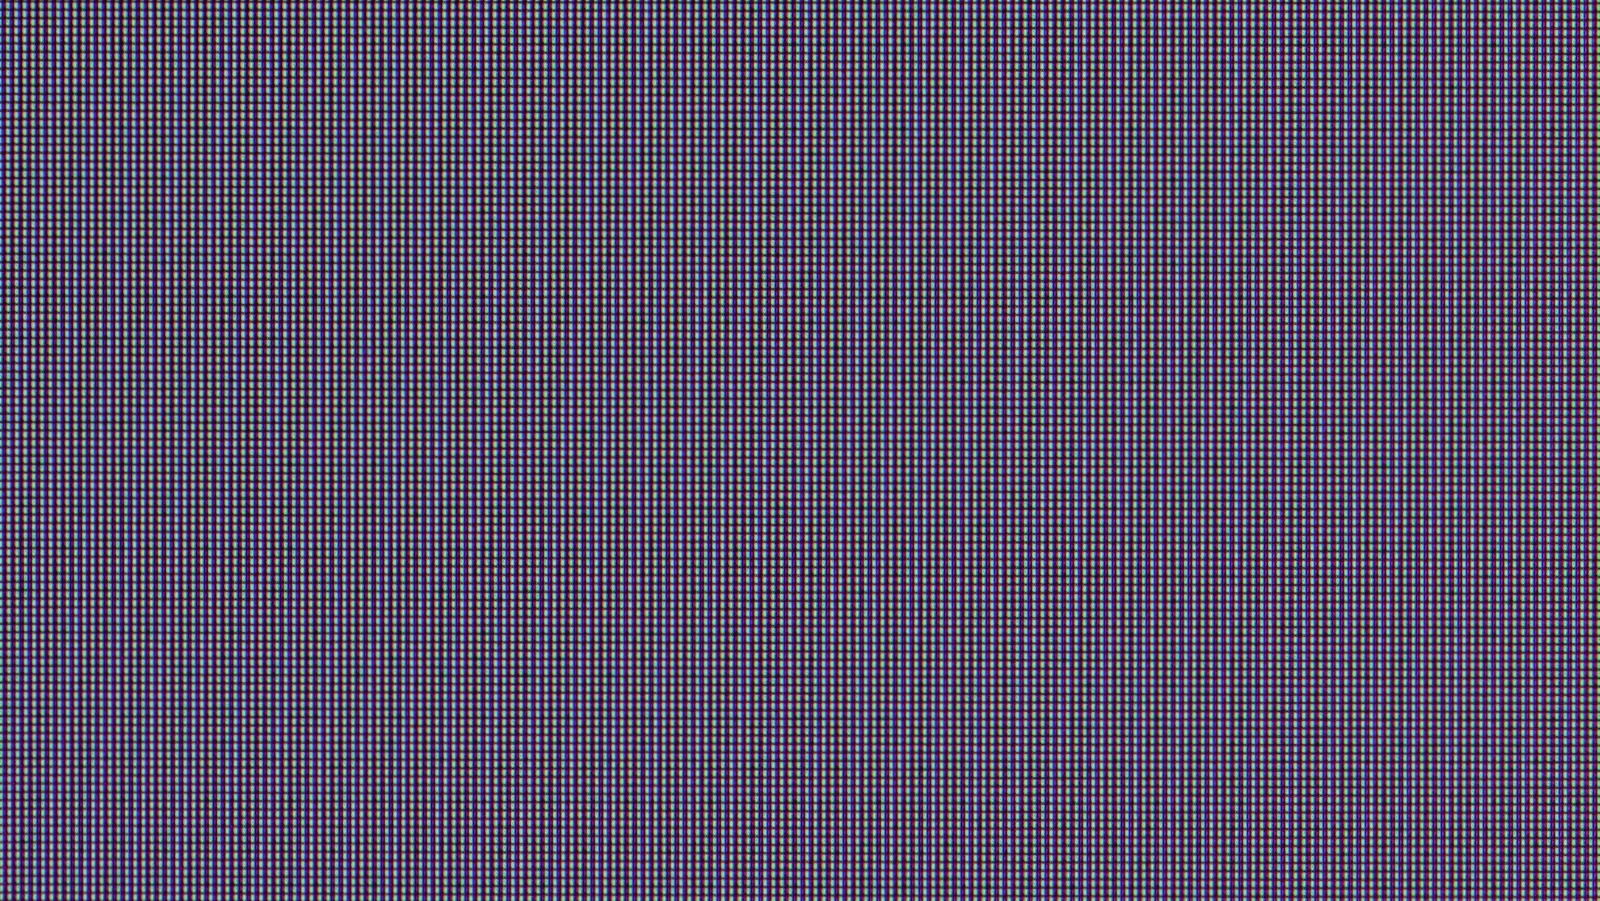 The 218 PPI pixel layout on the Retina iMac. Mouse-over to compare to the old iMac.